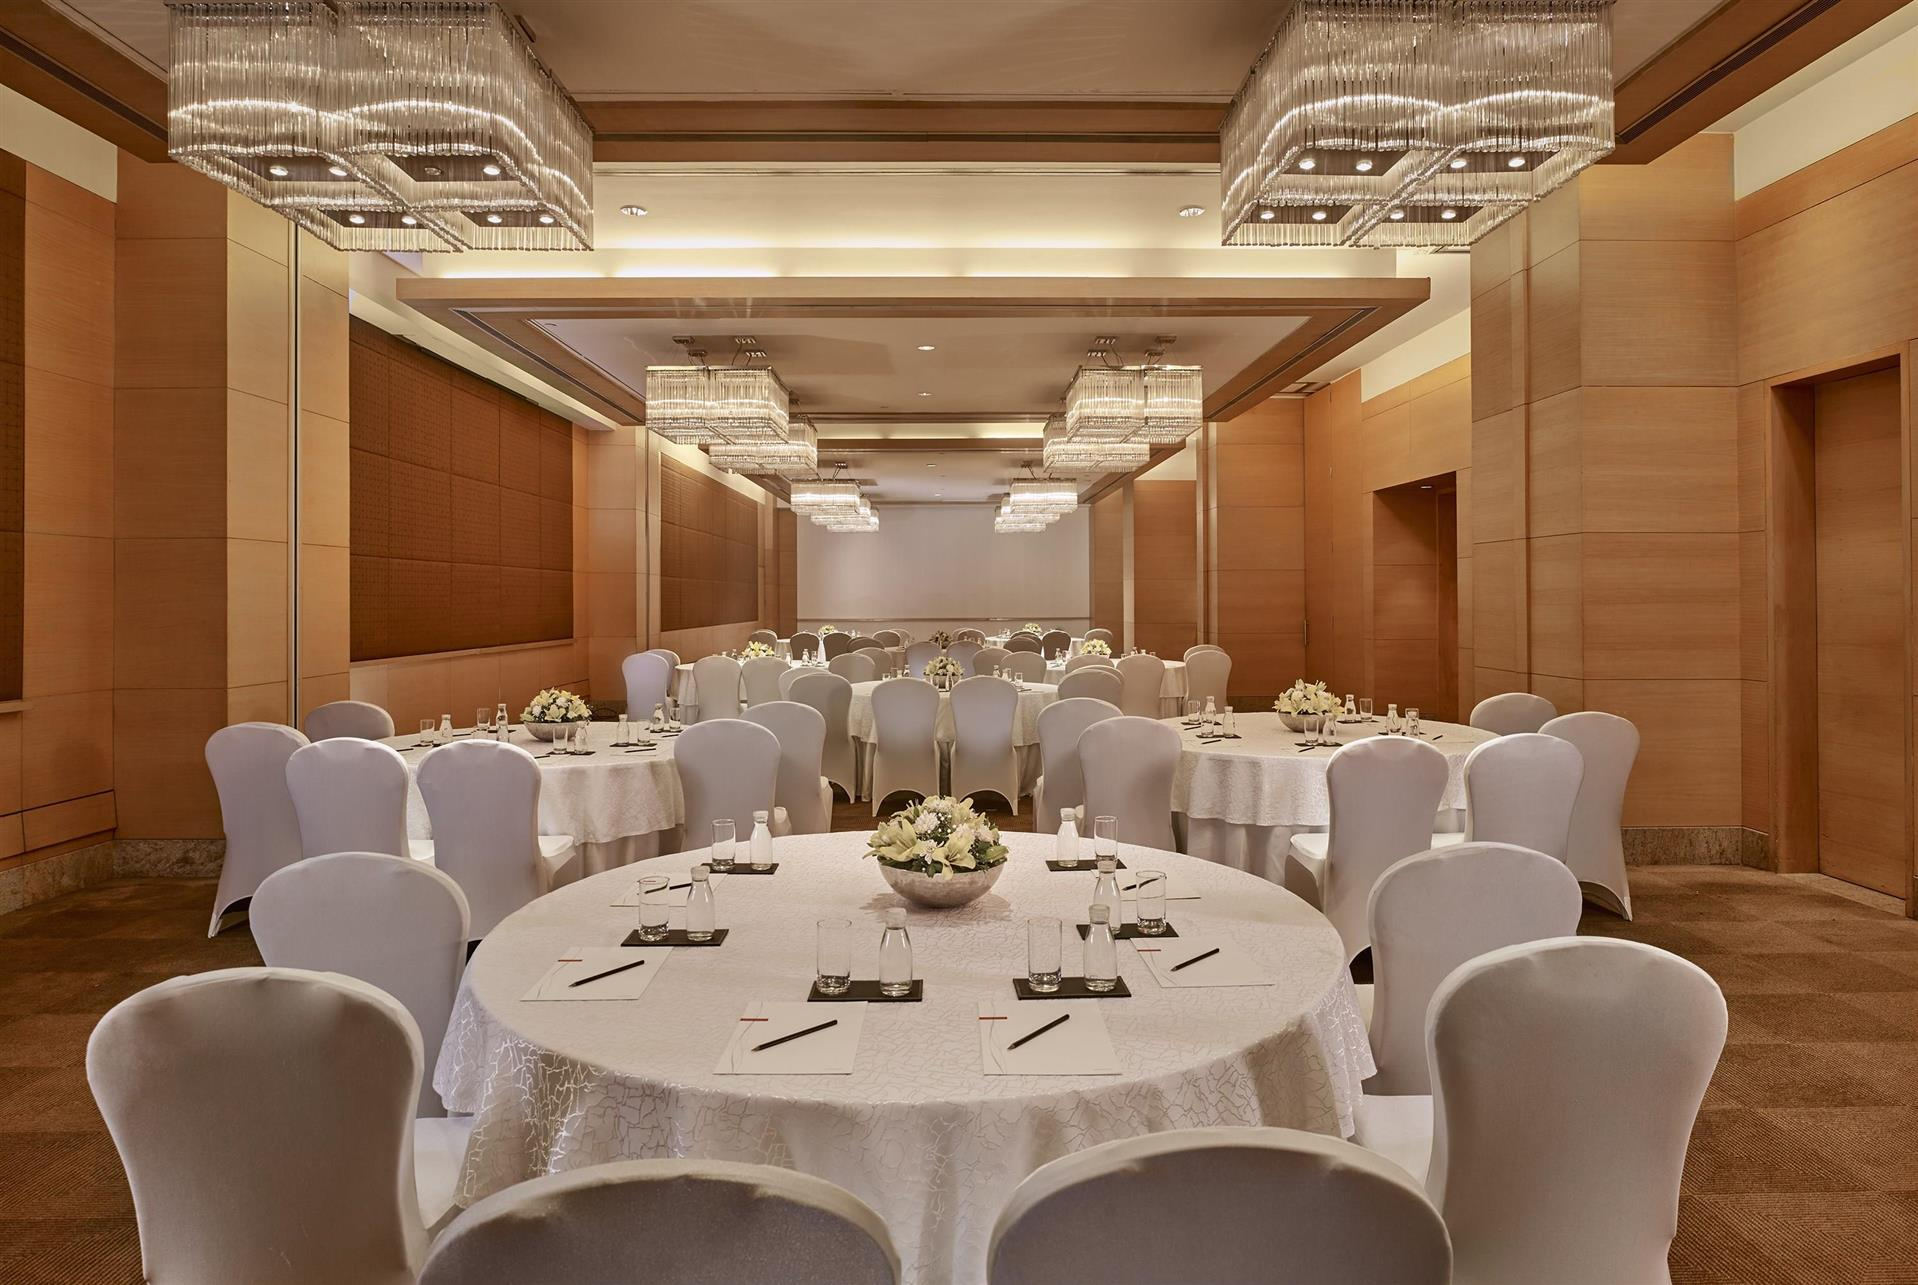 Grand Salon Meetings And Events At Grand Hyatt Mumbai Mumbai In